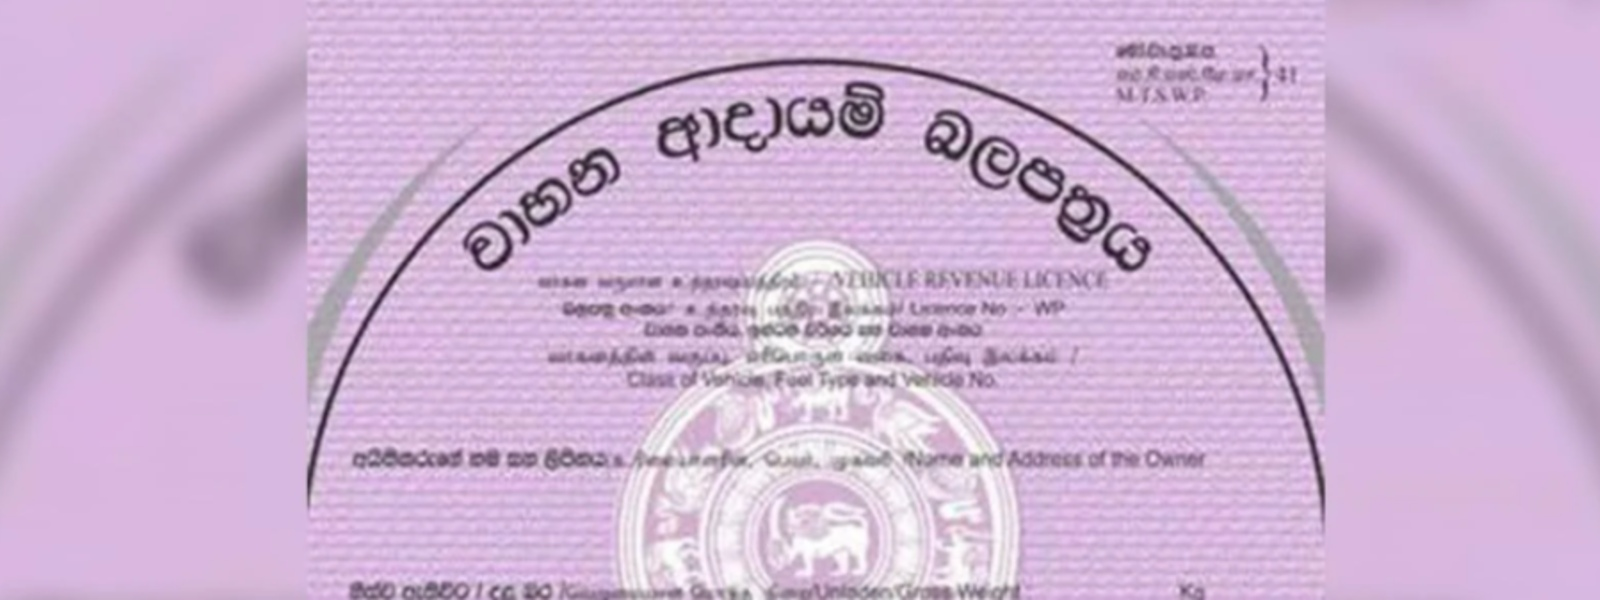 Issuance of Vehicle Revenue Licenses in NW province temporarily suspended